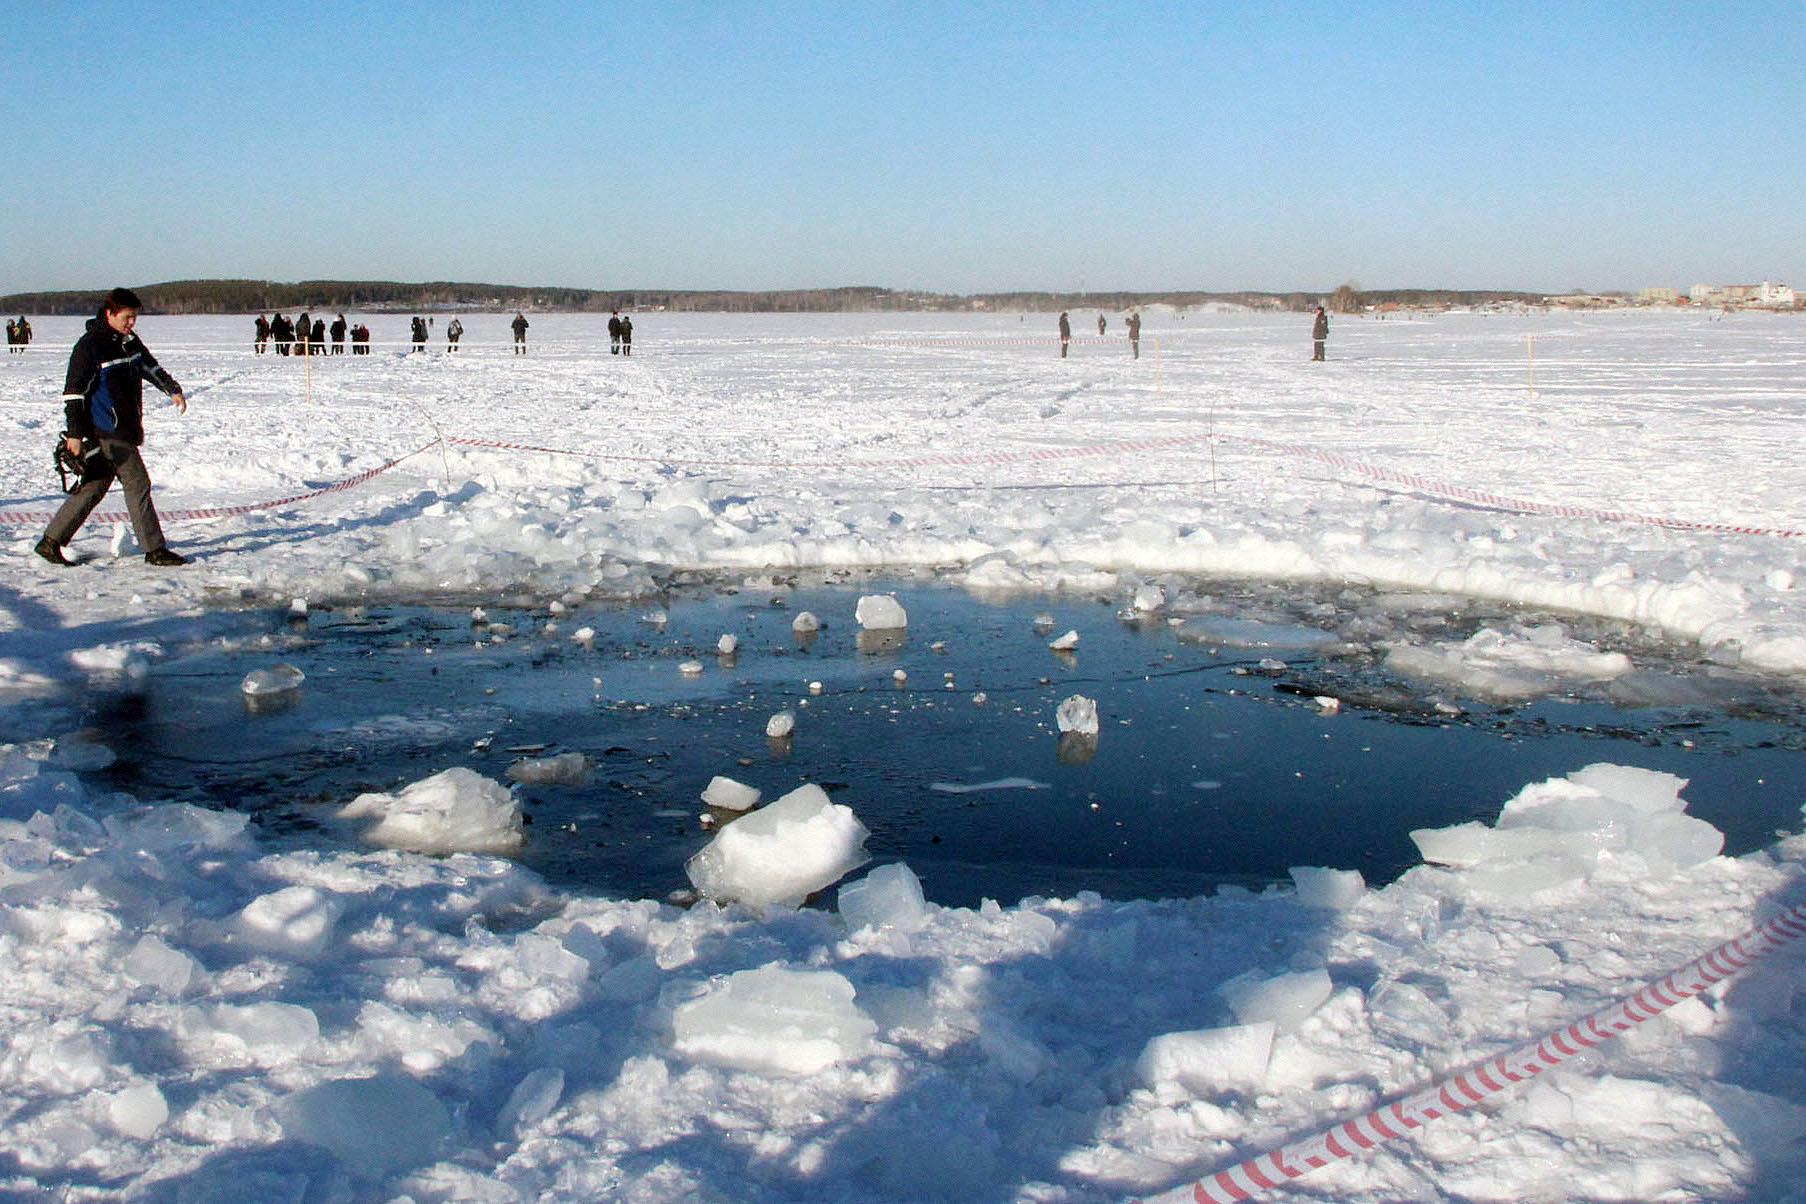 A hole on the ice of Chebarkul Lake in the Russian region of Chelyabinsk, believed to have been made by a meteor fragment, is shown on Feb. 16, 2013.